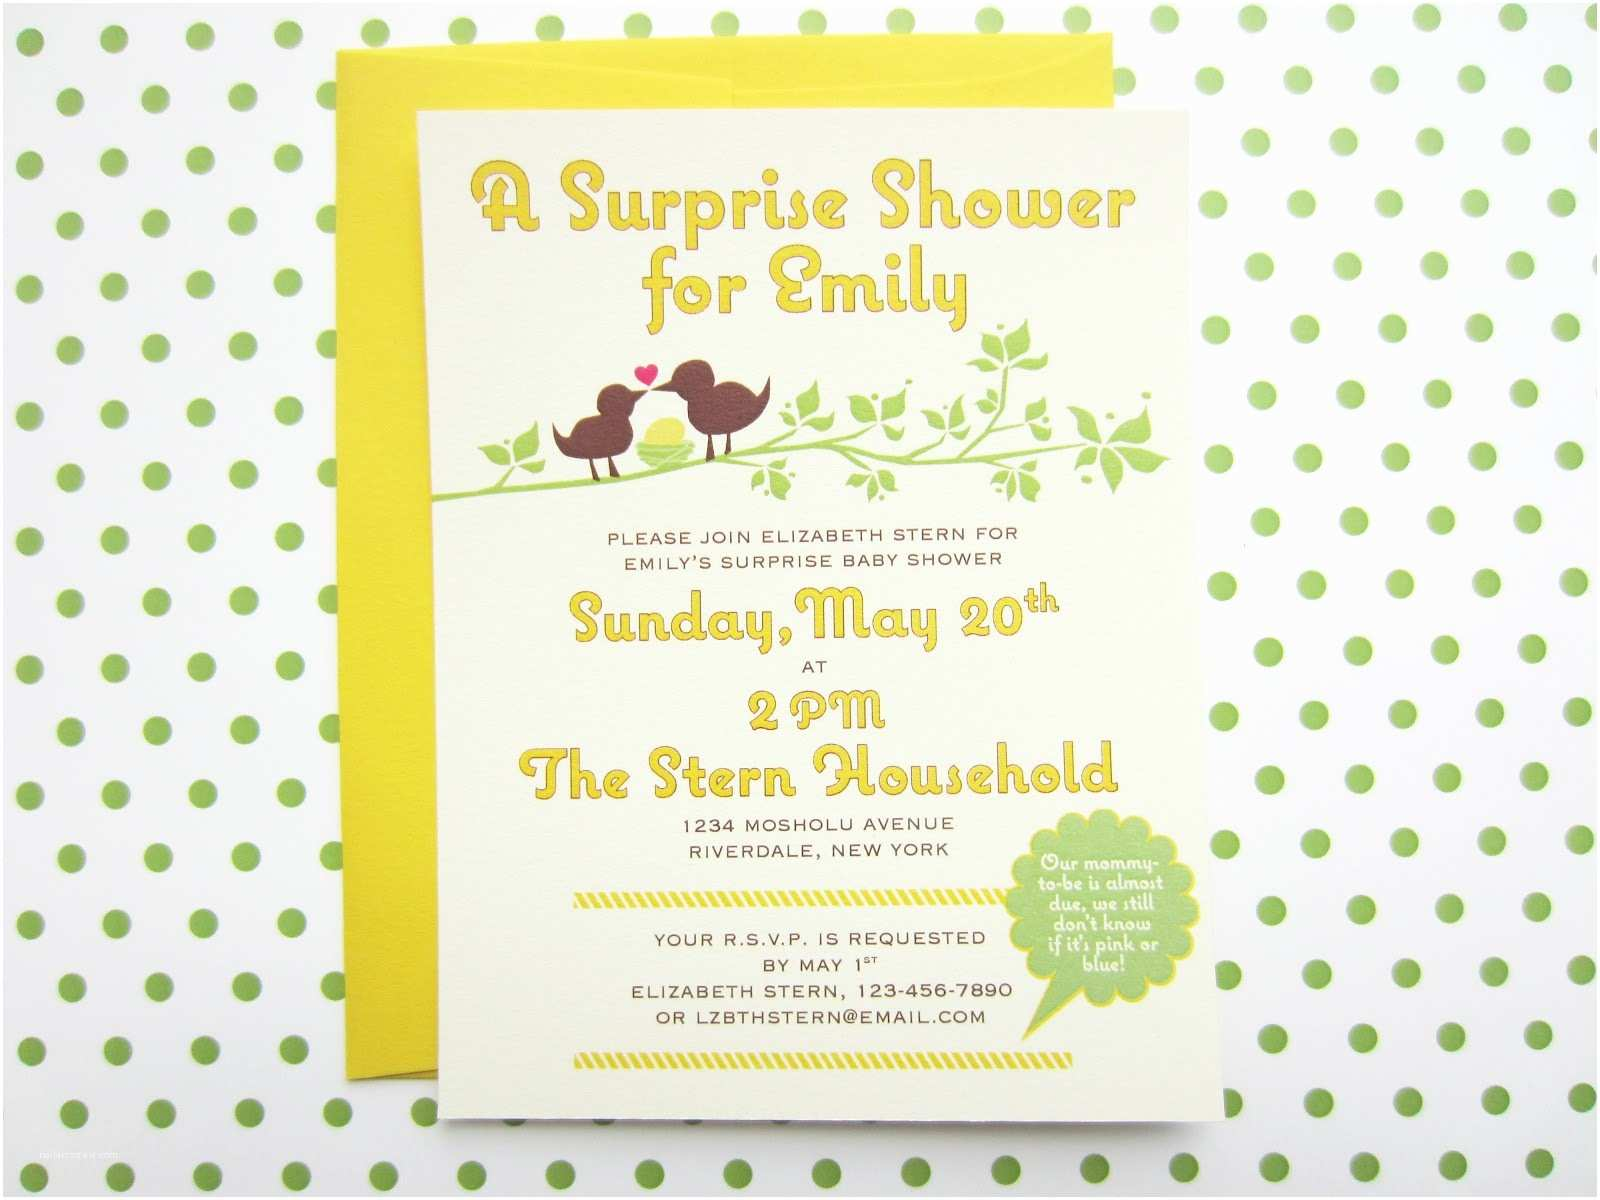 Surprise Baby Shower Invitation Things I Make and Stuff I Like Surprise Baby Shower